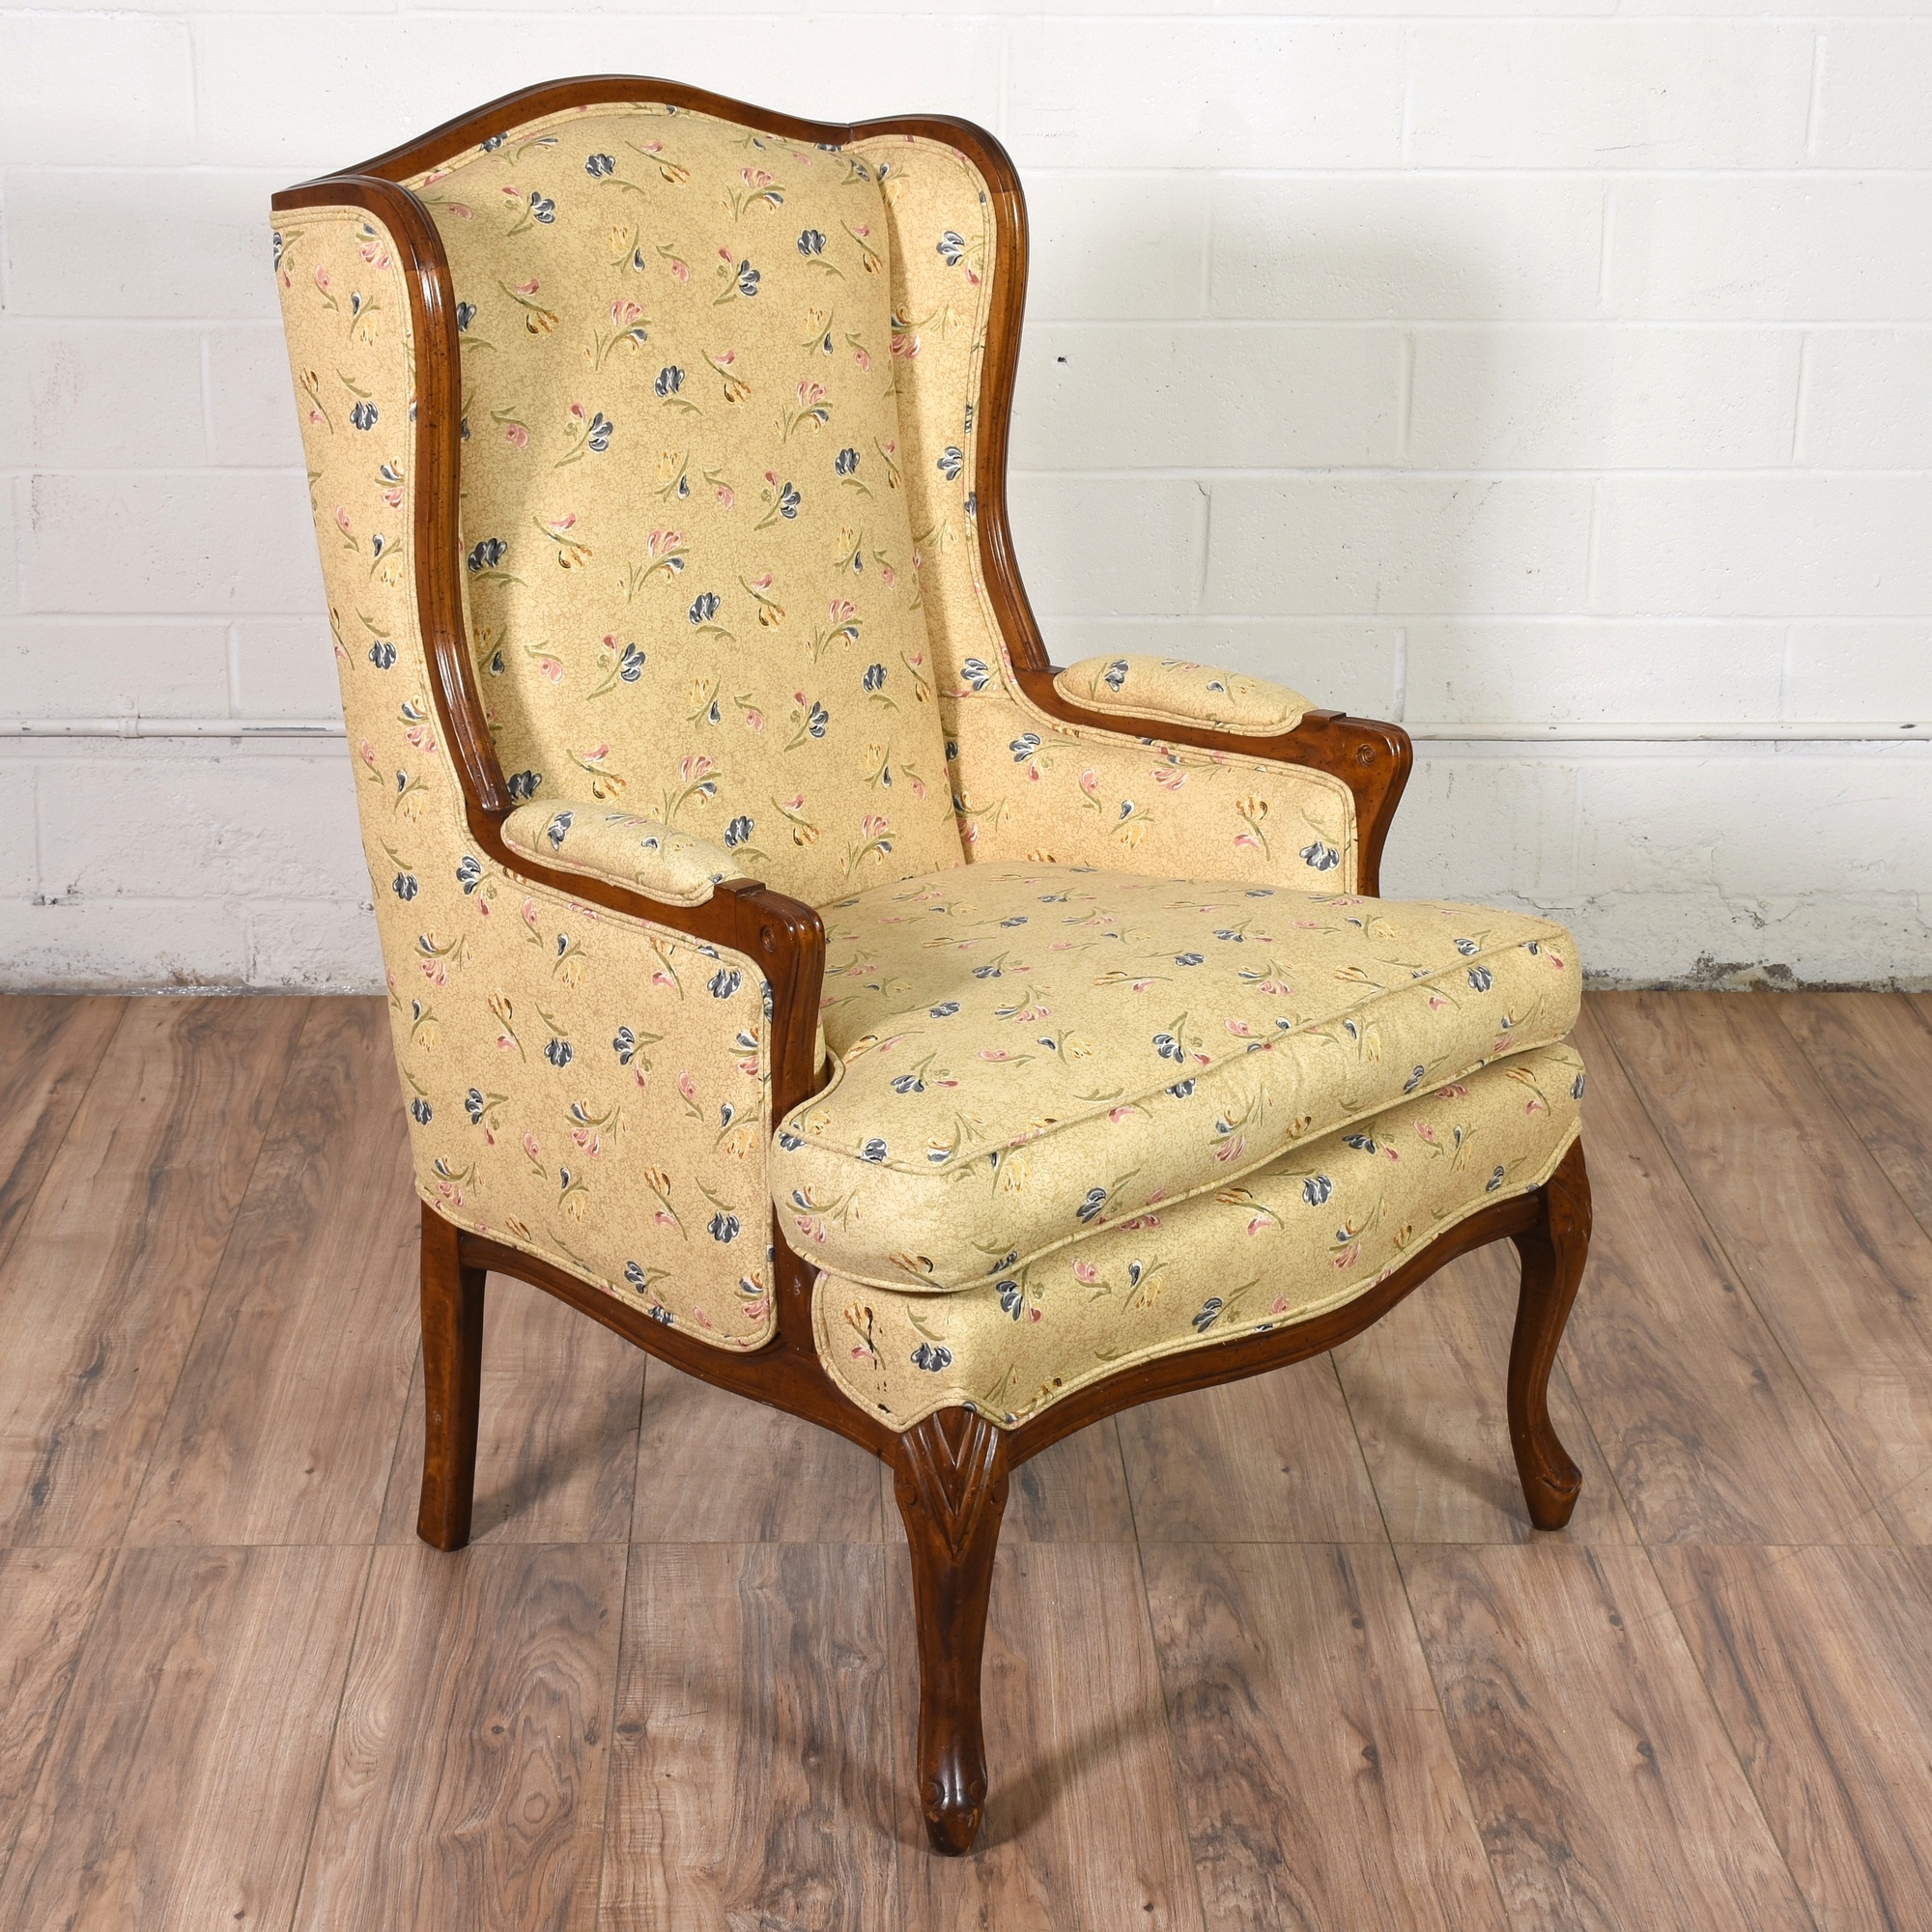 Upholstered Wingback Chair In Yellow Floral Fabric | Loveseat Vintage  Furniture San Diego